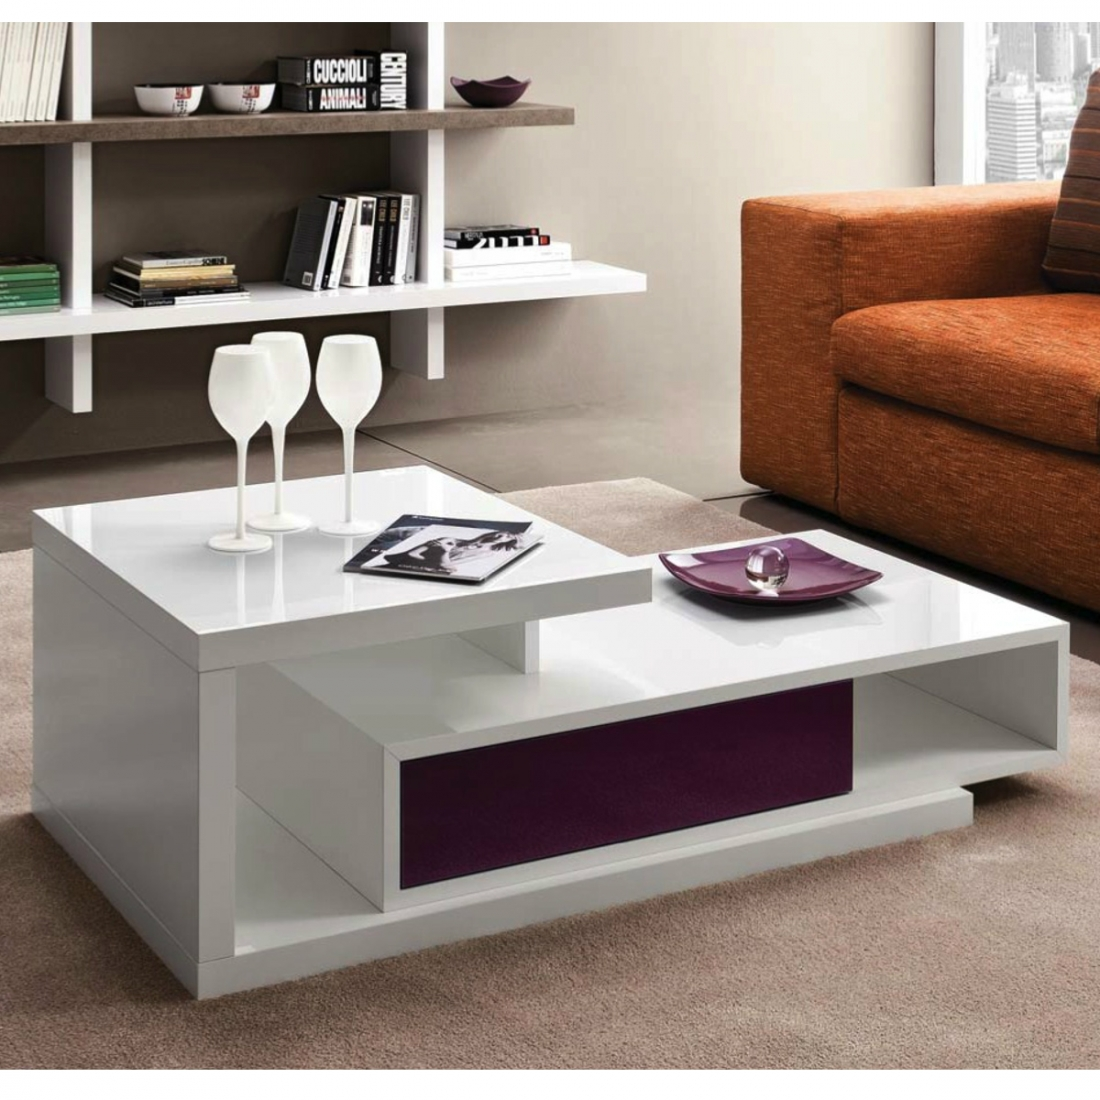 table-basse-design-mary.jpg